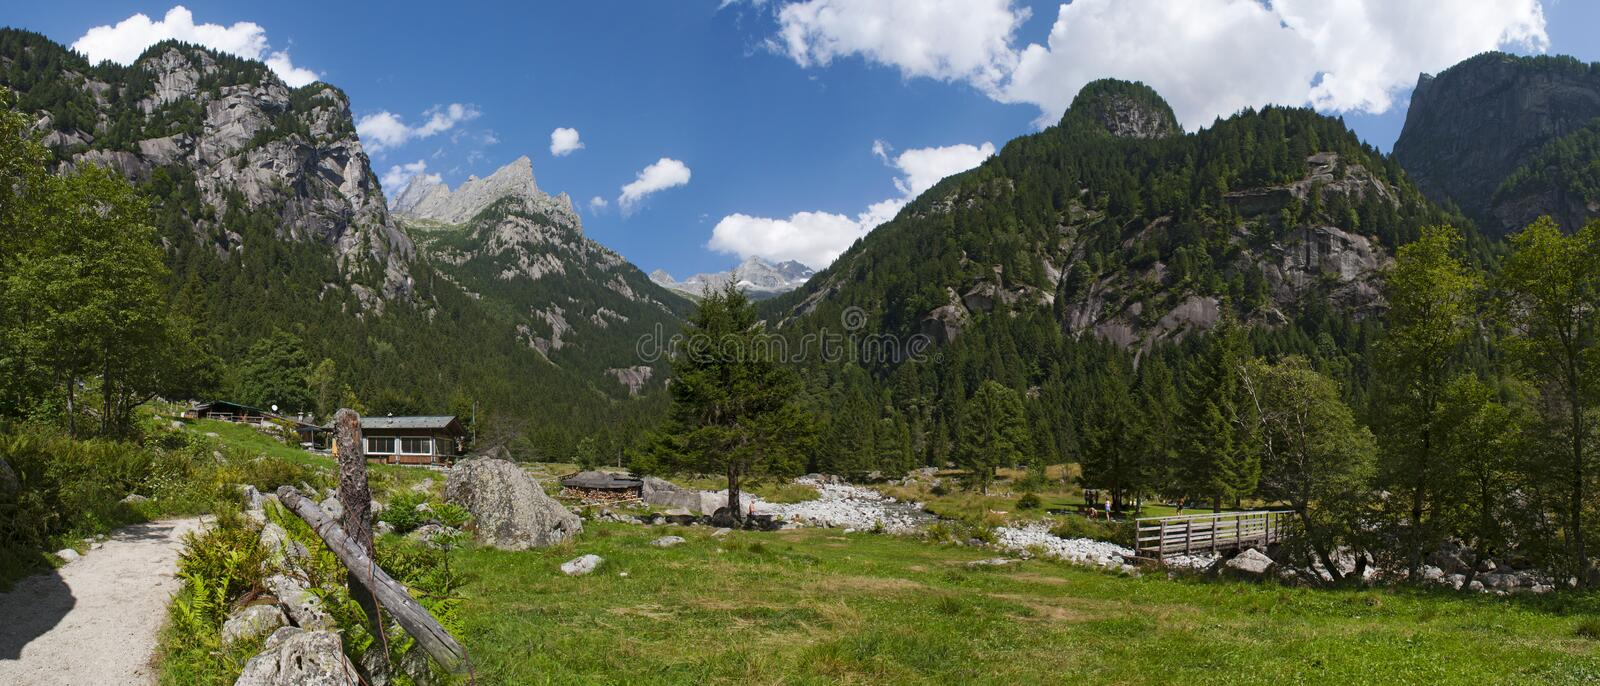 Val di Mello, Val Masino, Valtellina, Sondrio, Italy, Europe. Italy, 03/08/2017: panoramic view of the Mello Valley, Val di Mello, a green valley surrounded by royalty free stock photos